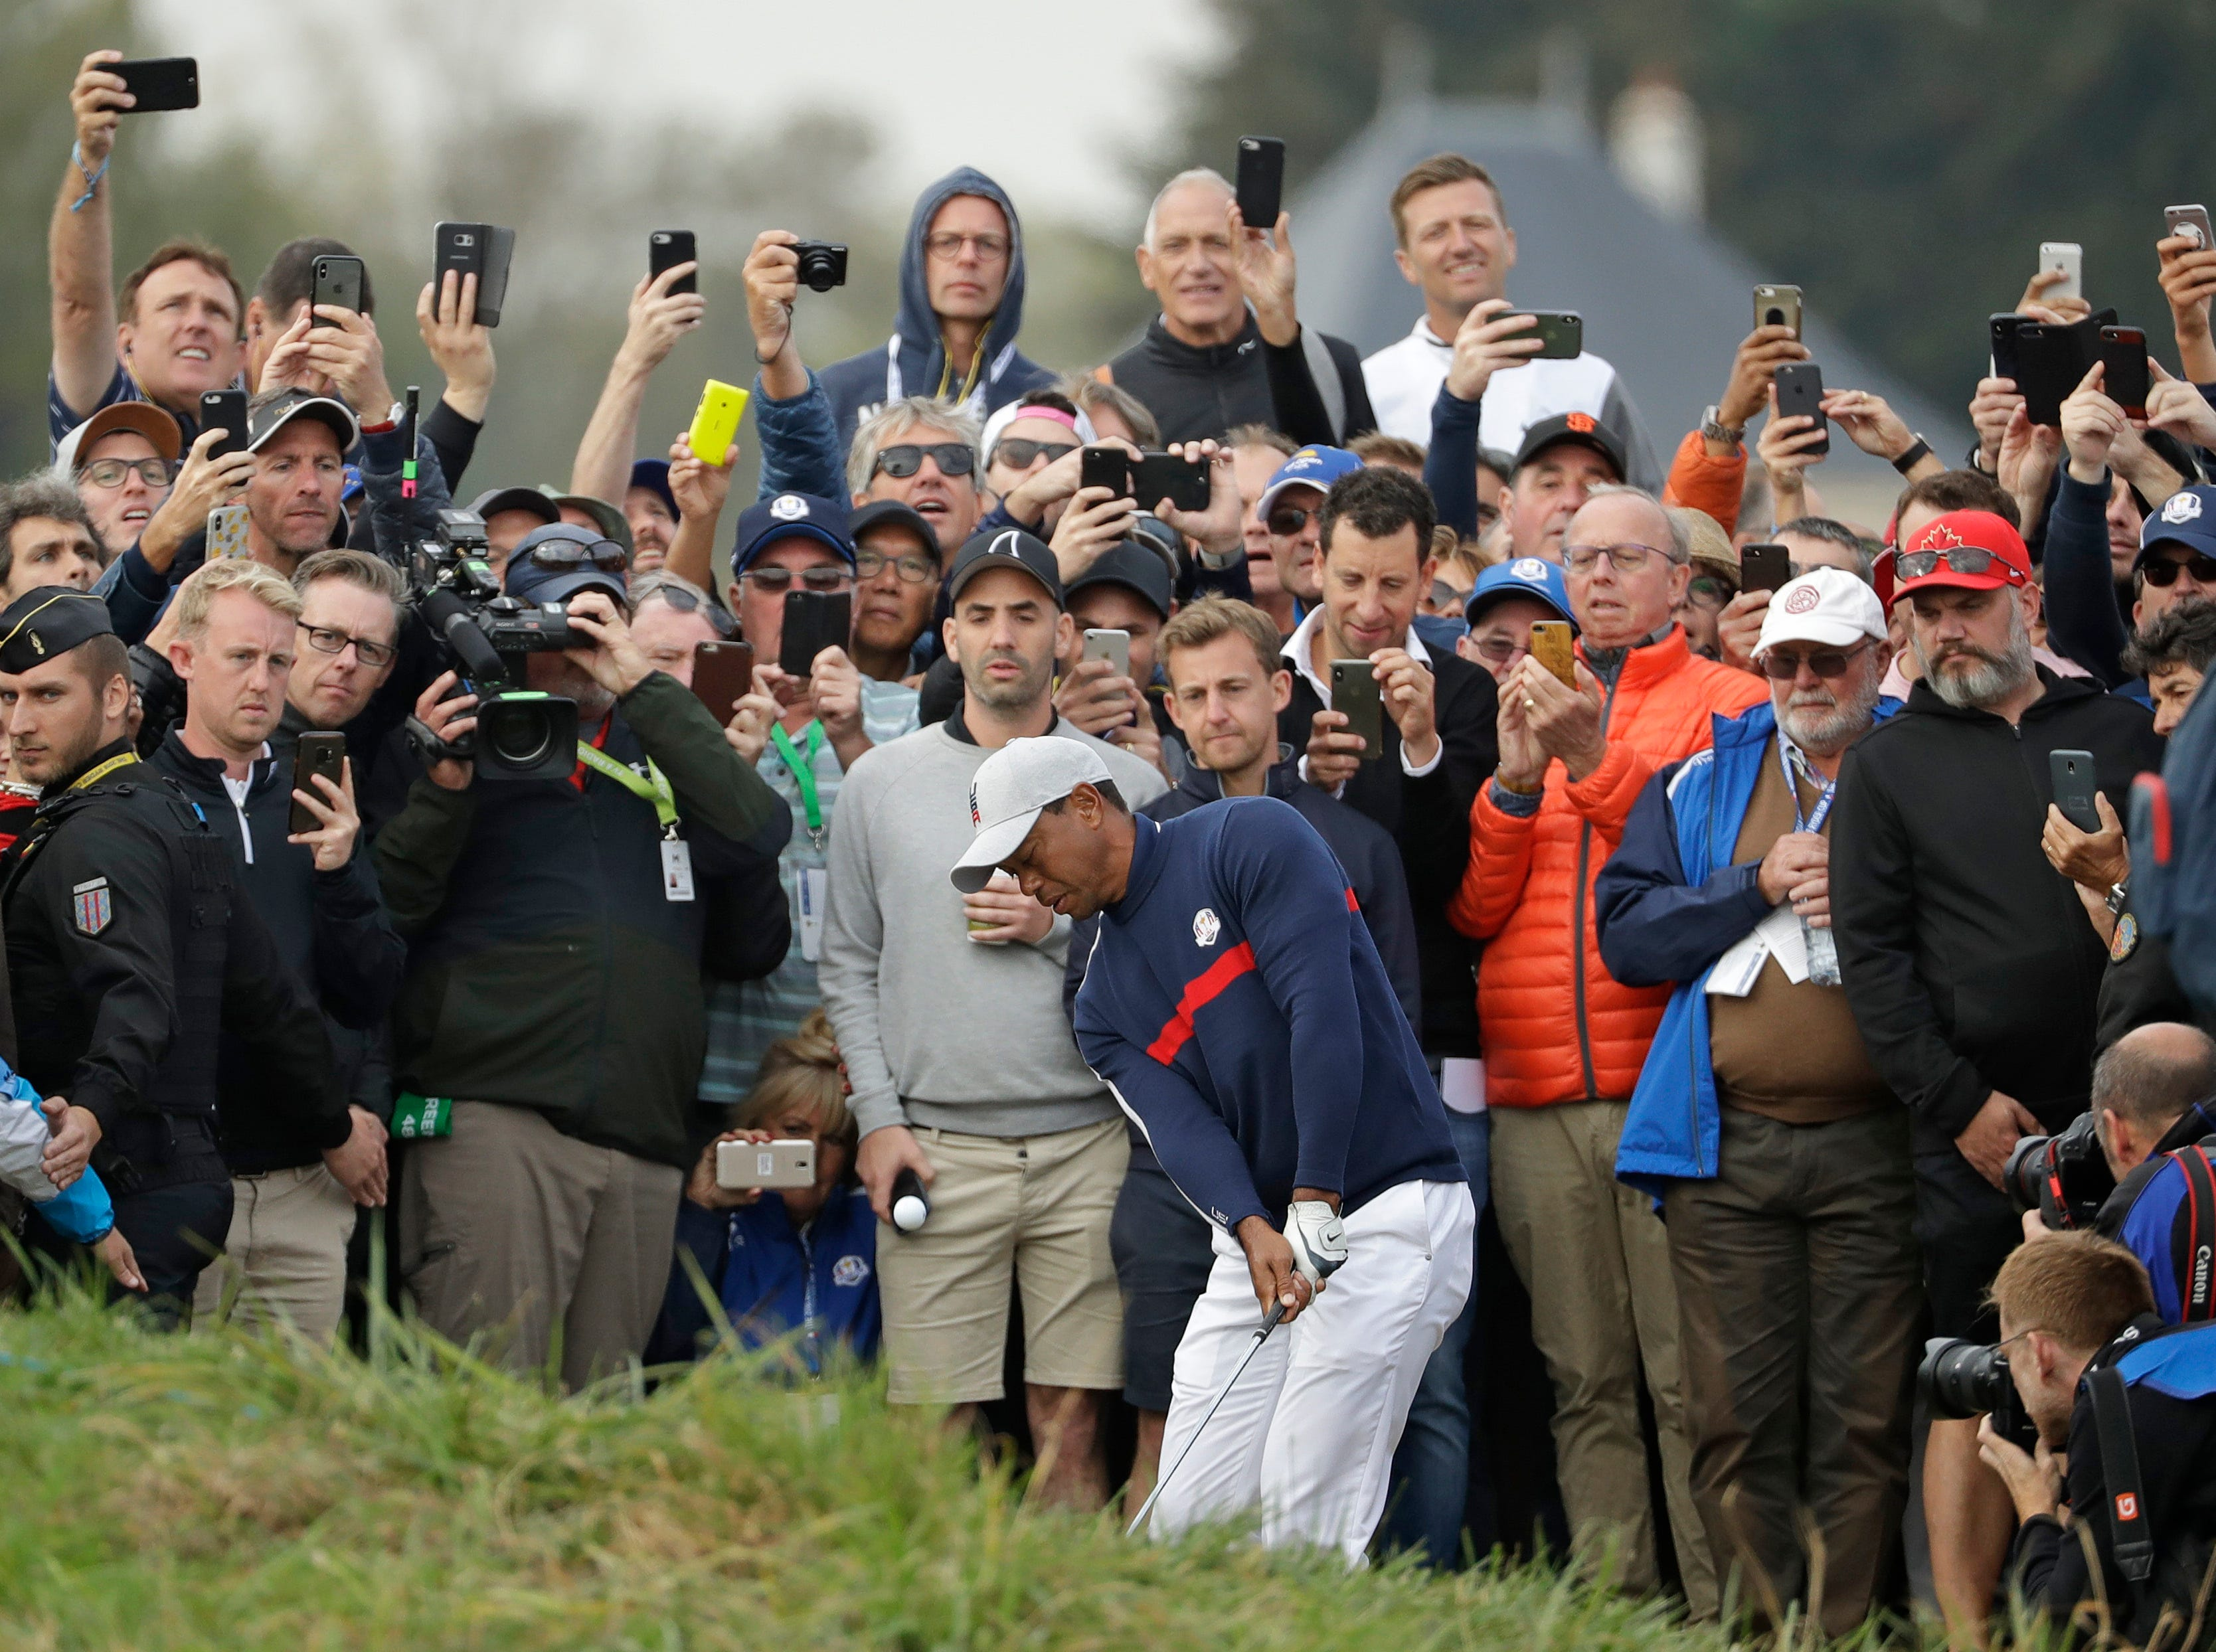 Tiger Woods chips on to the 6th green during a fourball match on the opening day of the 42nd Ryder Cup at Le Golf National in Saint-Quentin-en-Yvelines, on Sept. 28.